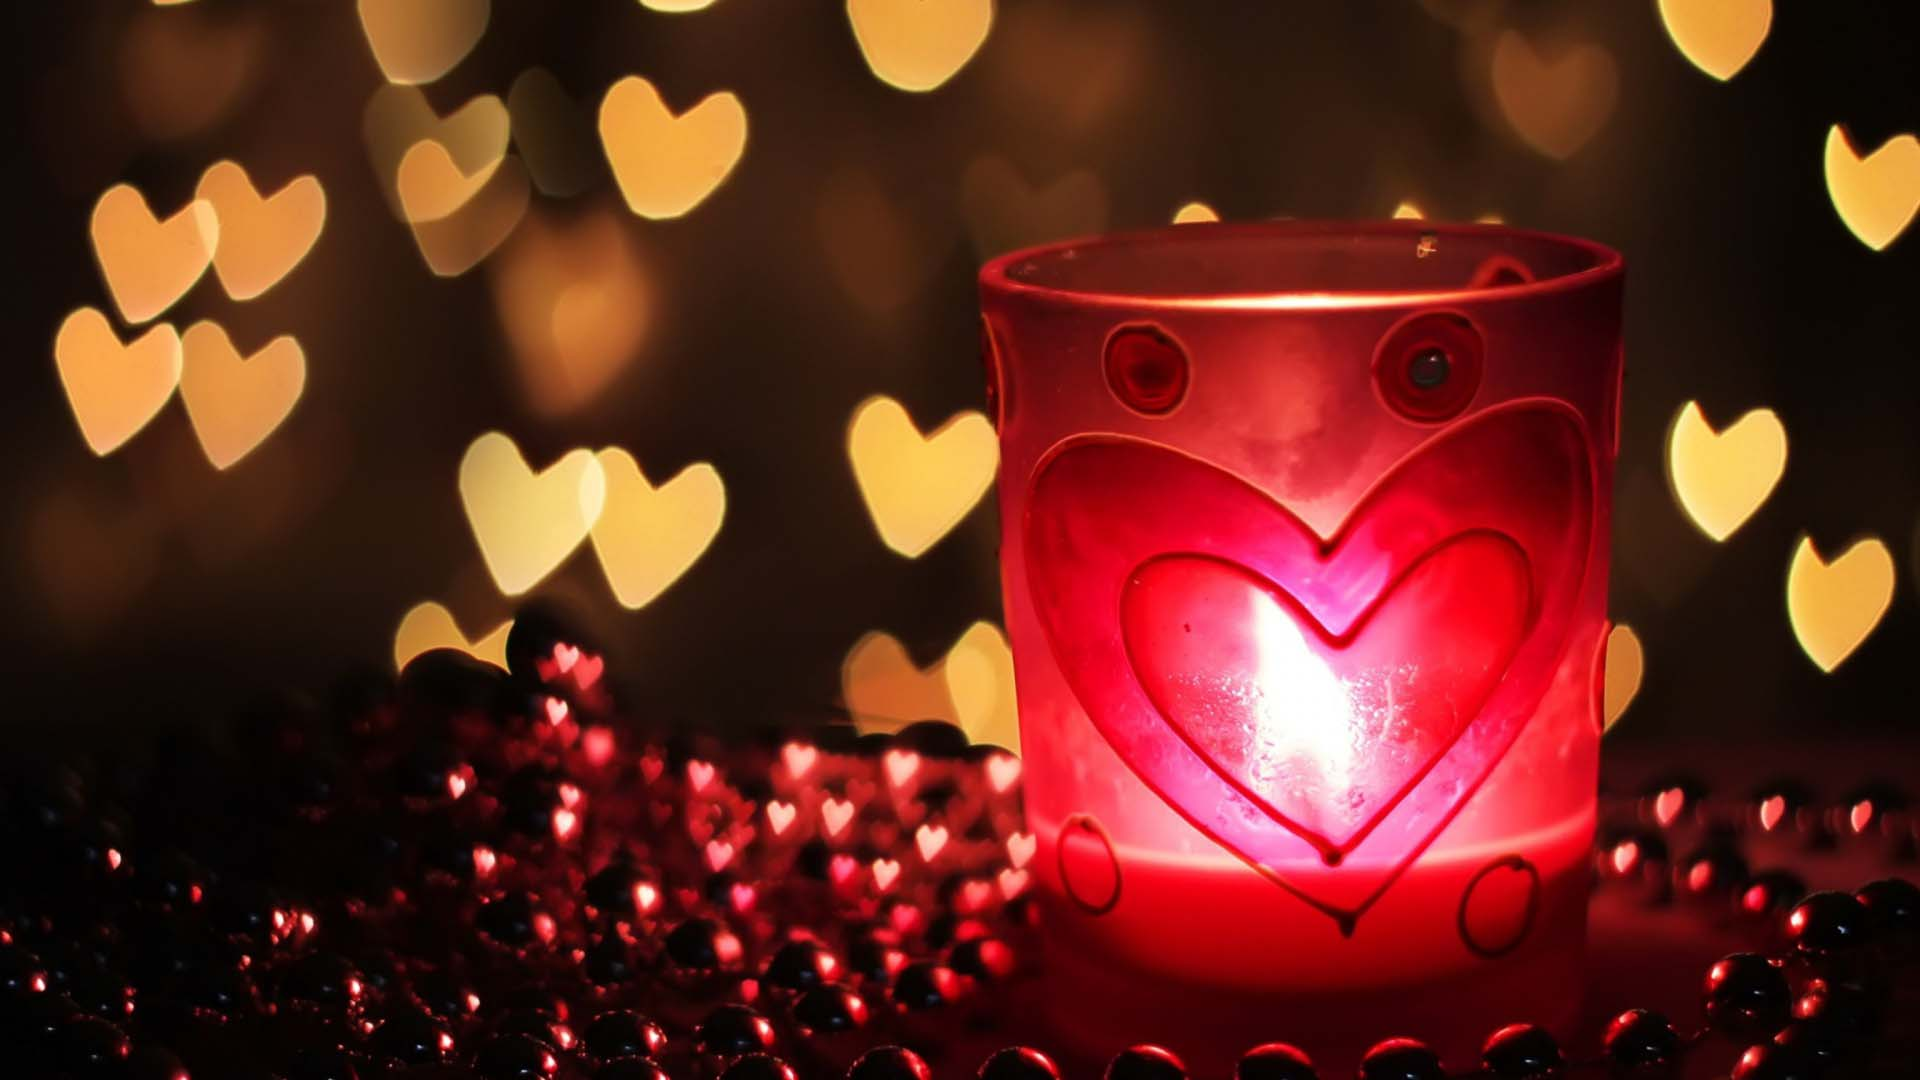 Wallpaper download new love - Candle Love Latest Hd Wallpapers Free Download Hd Free